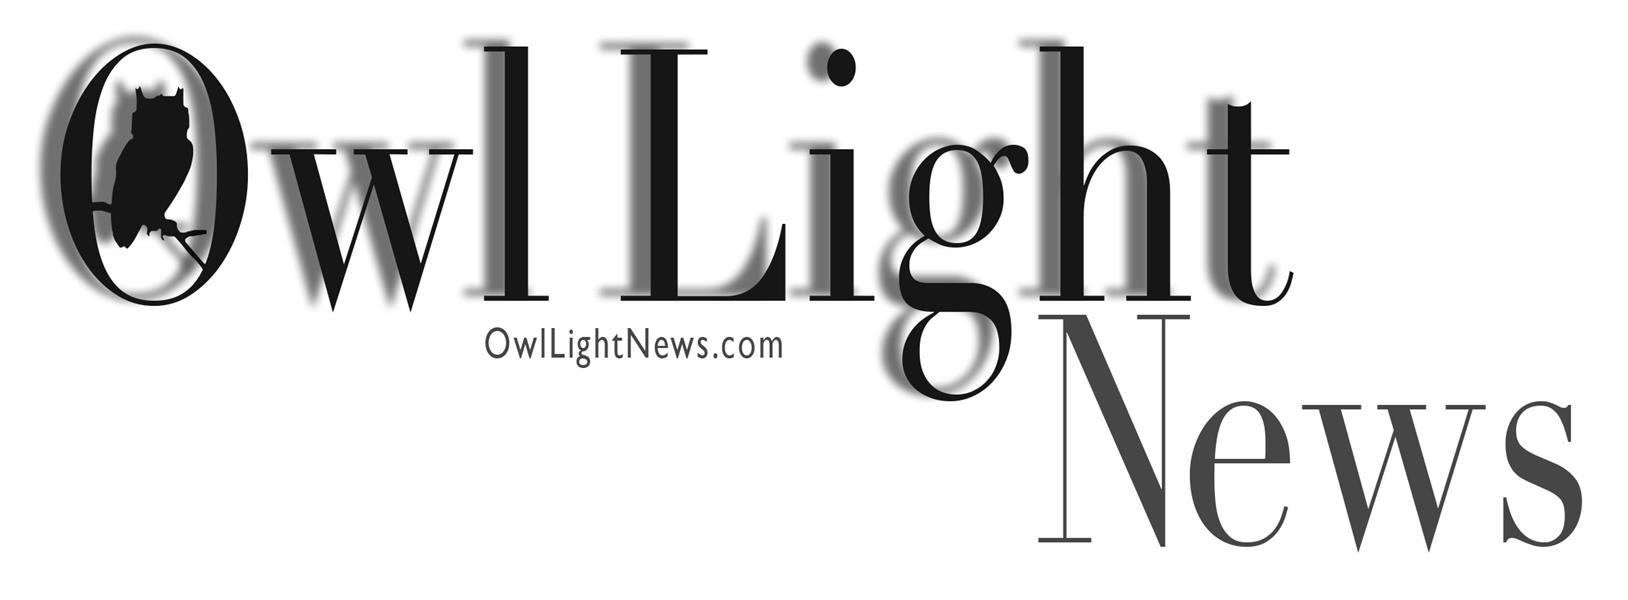 Canadice Press - Owl Light News